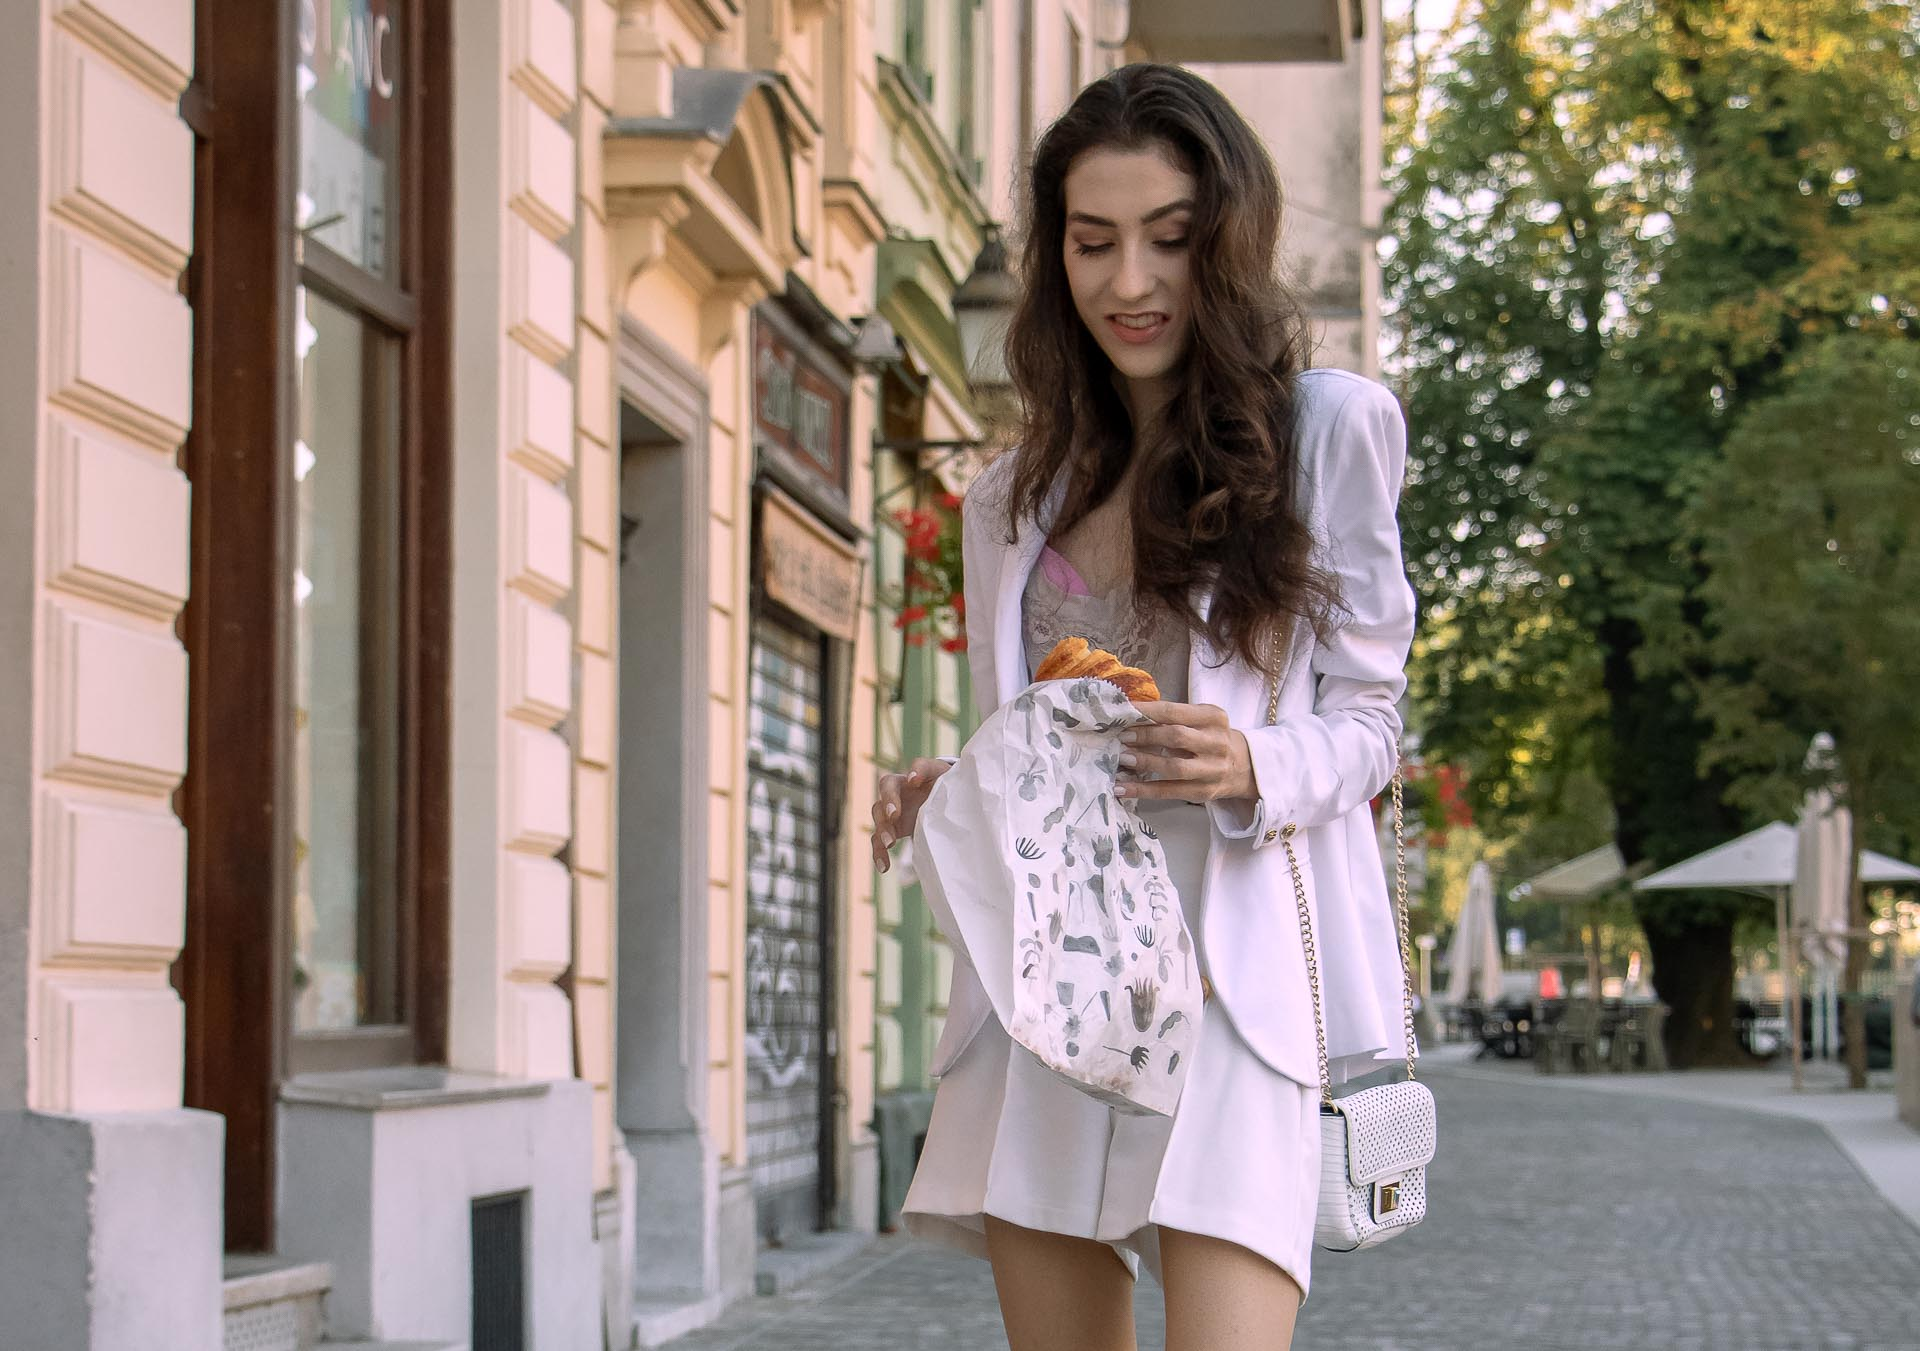 Beautiful Slovenian Fashion Blogger Veronika Lipar of Brunette from Wall wearing all in white suit, white blazer, white tailored shorts, Stuart Weitzman high shine metallic nudist song sandals, shoulder bag with a paper bag on the street in the morning after party